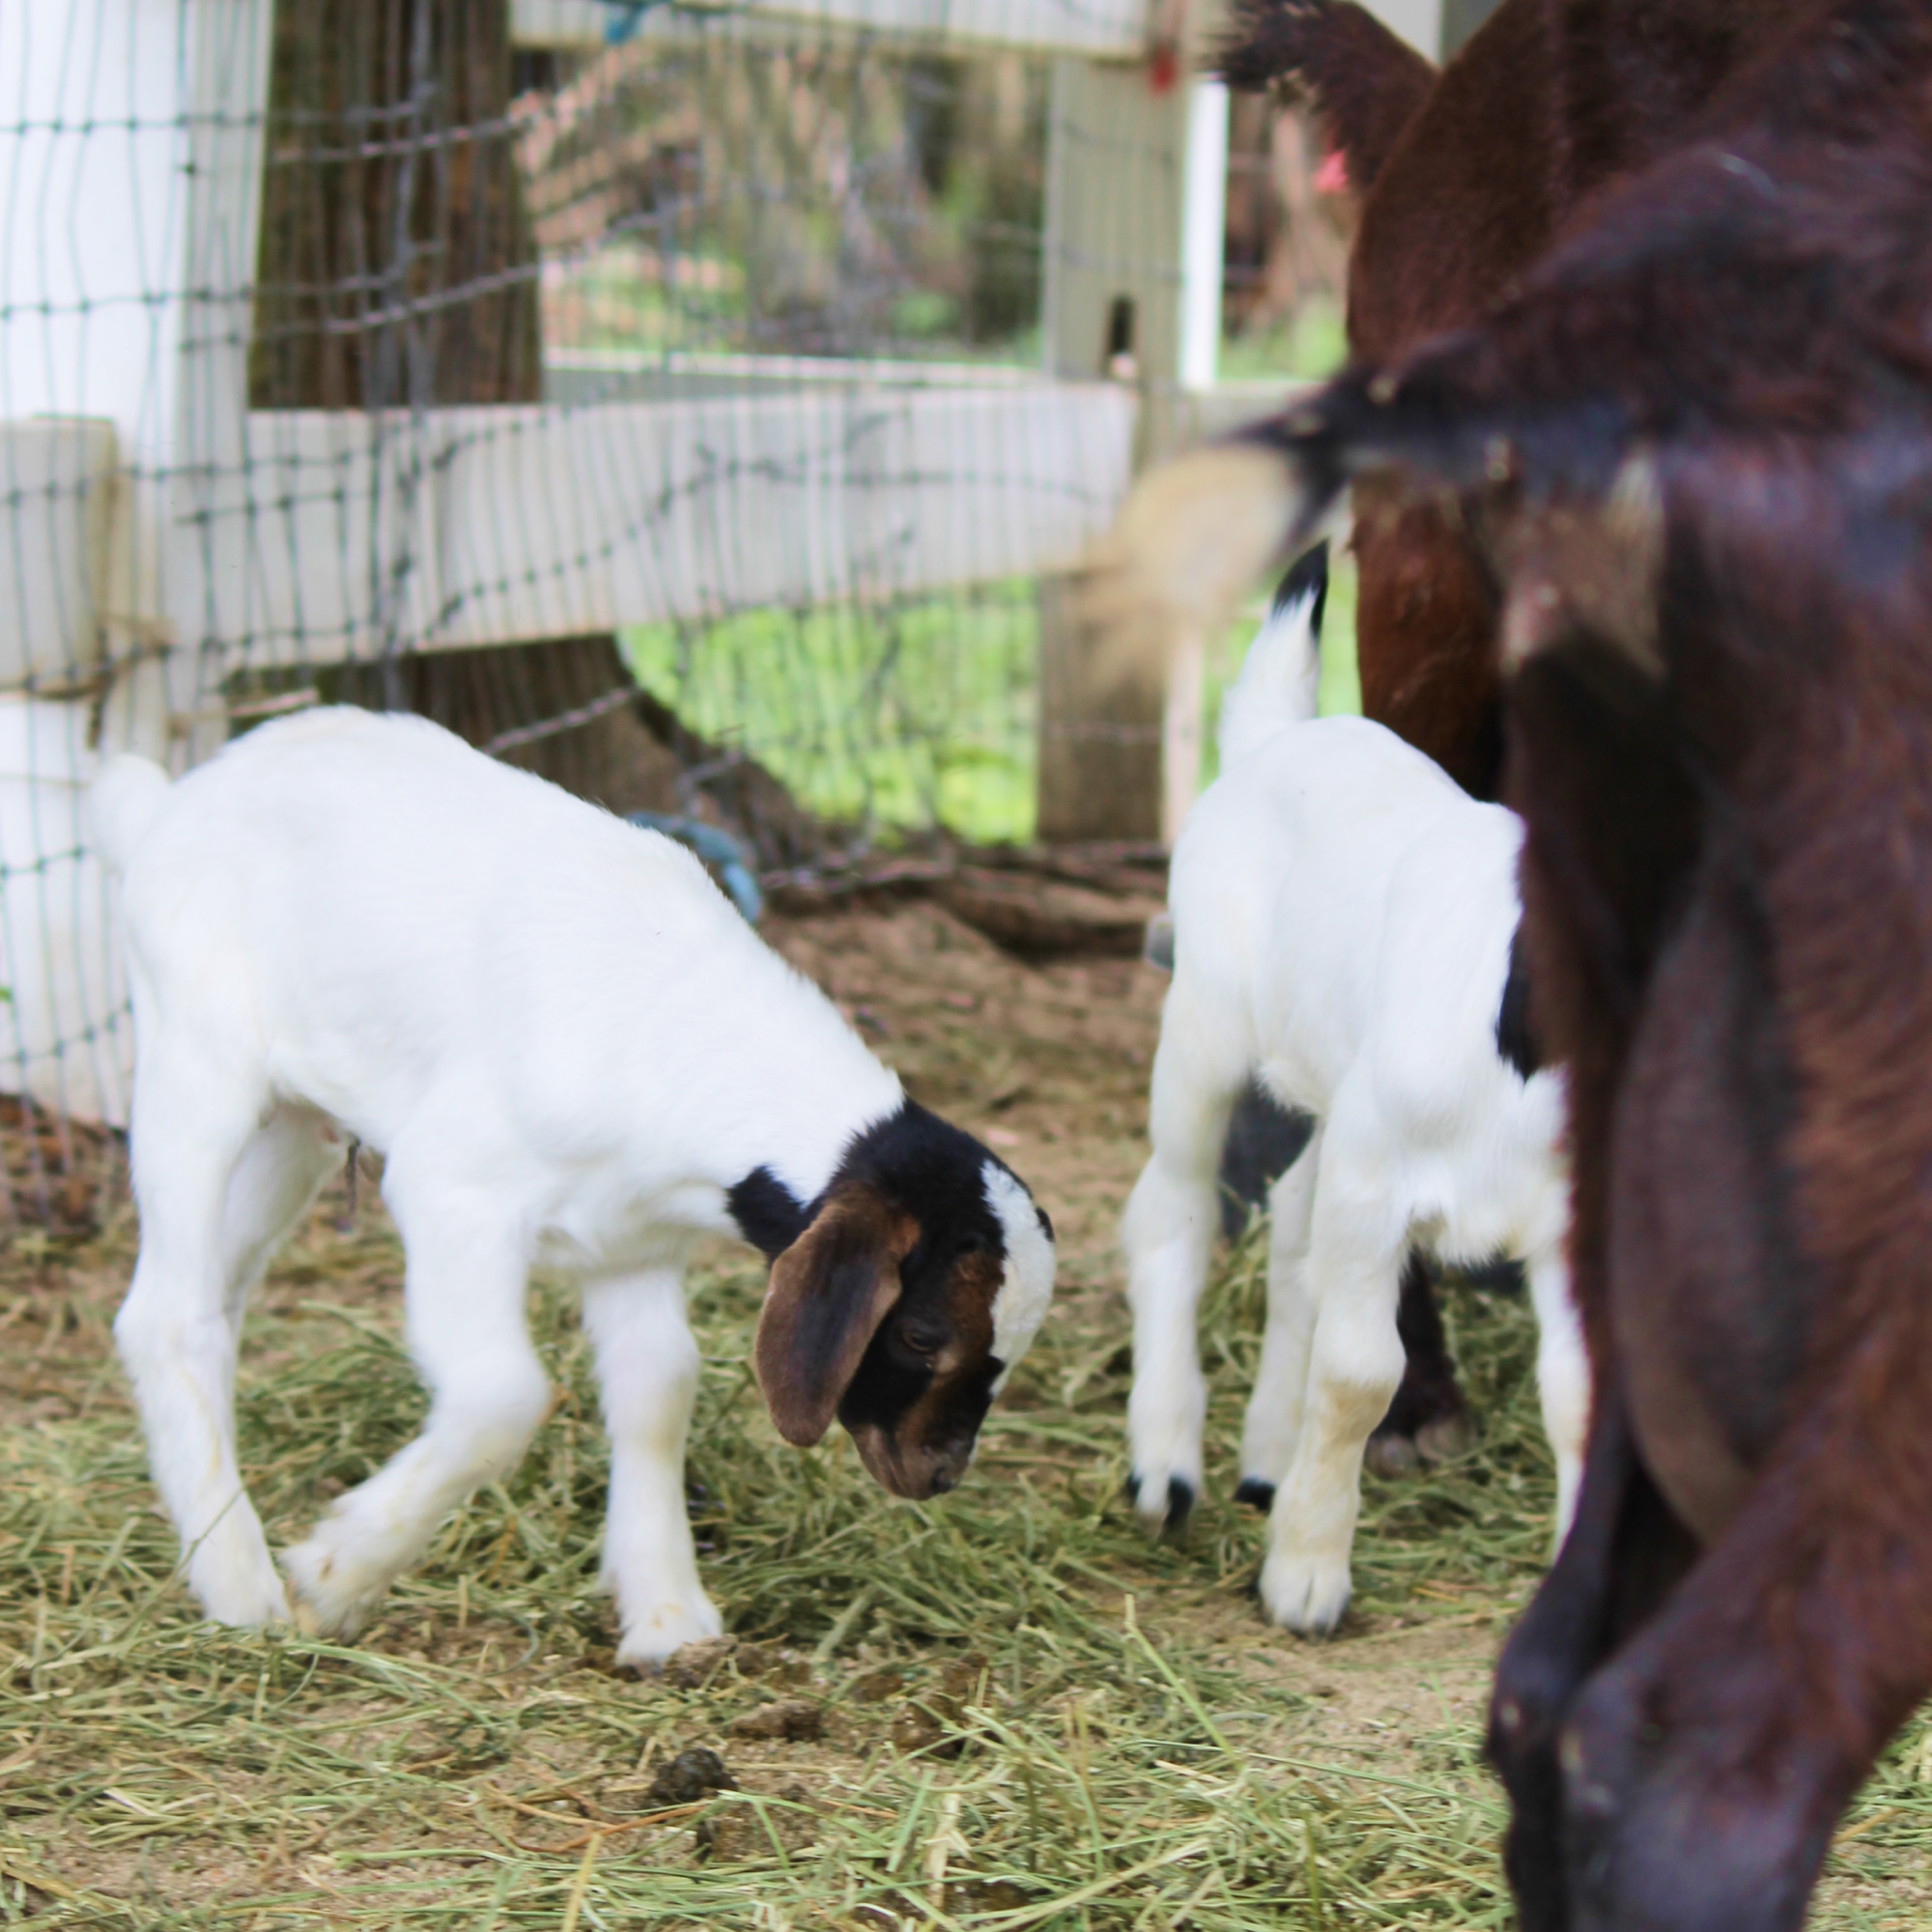 South Florida Society for the Prevention of Cruelty to Animals - Rescue Baby Goat